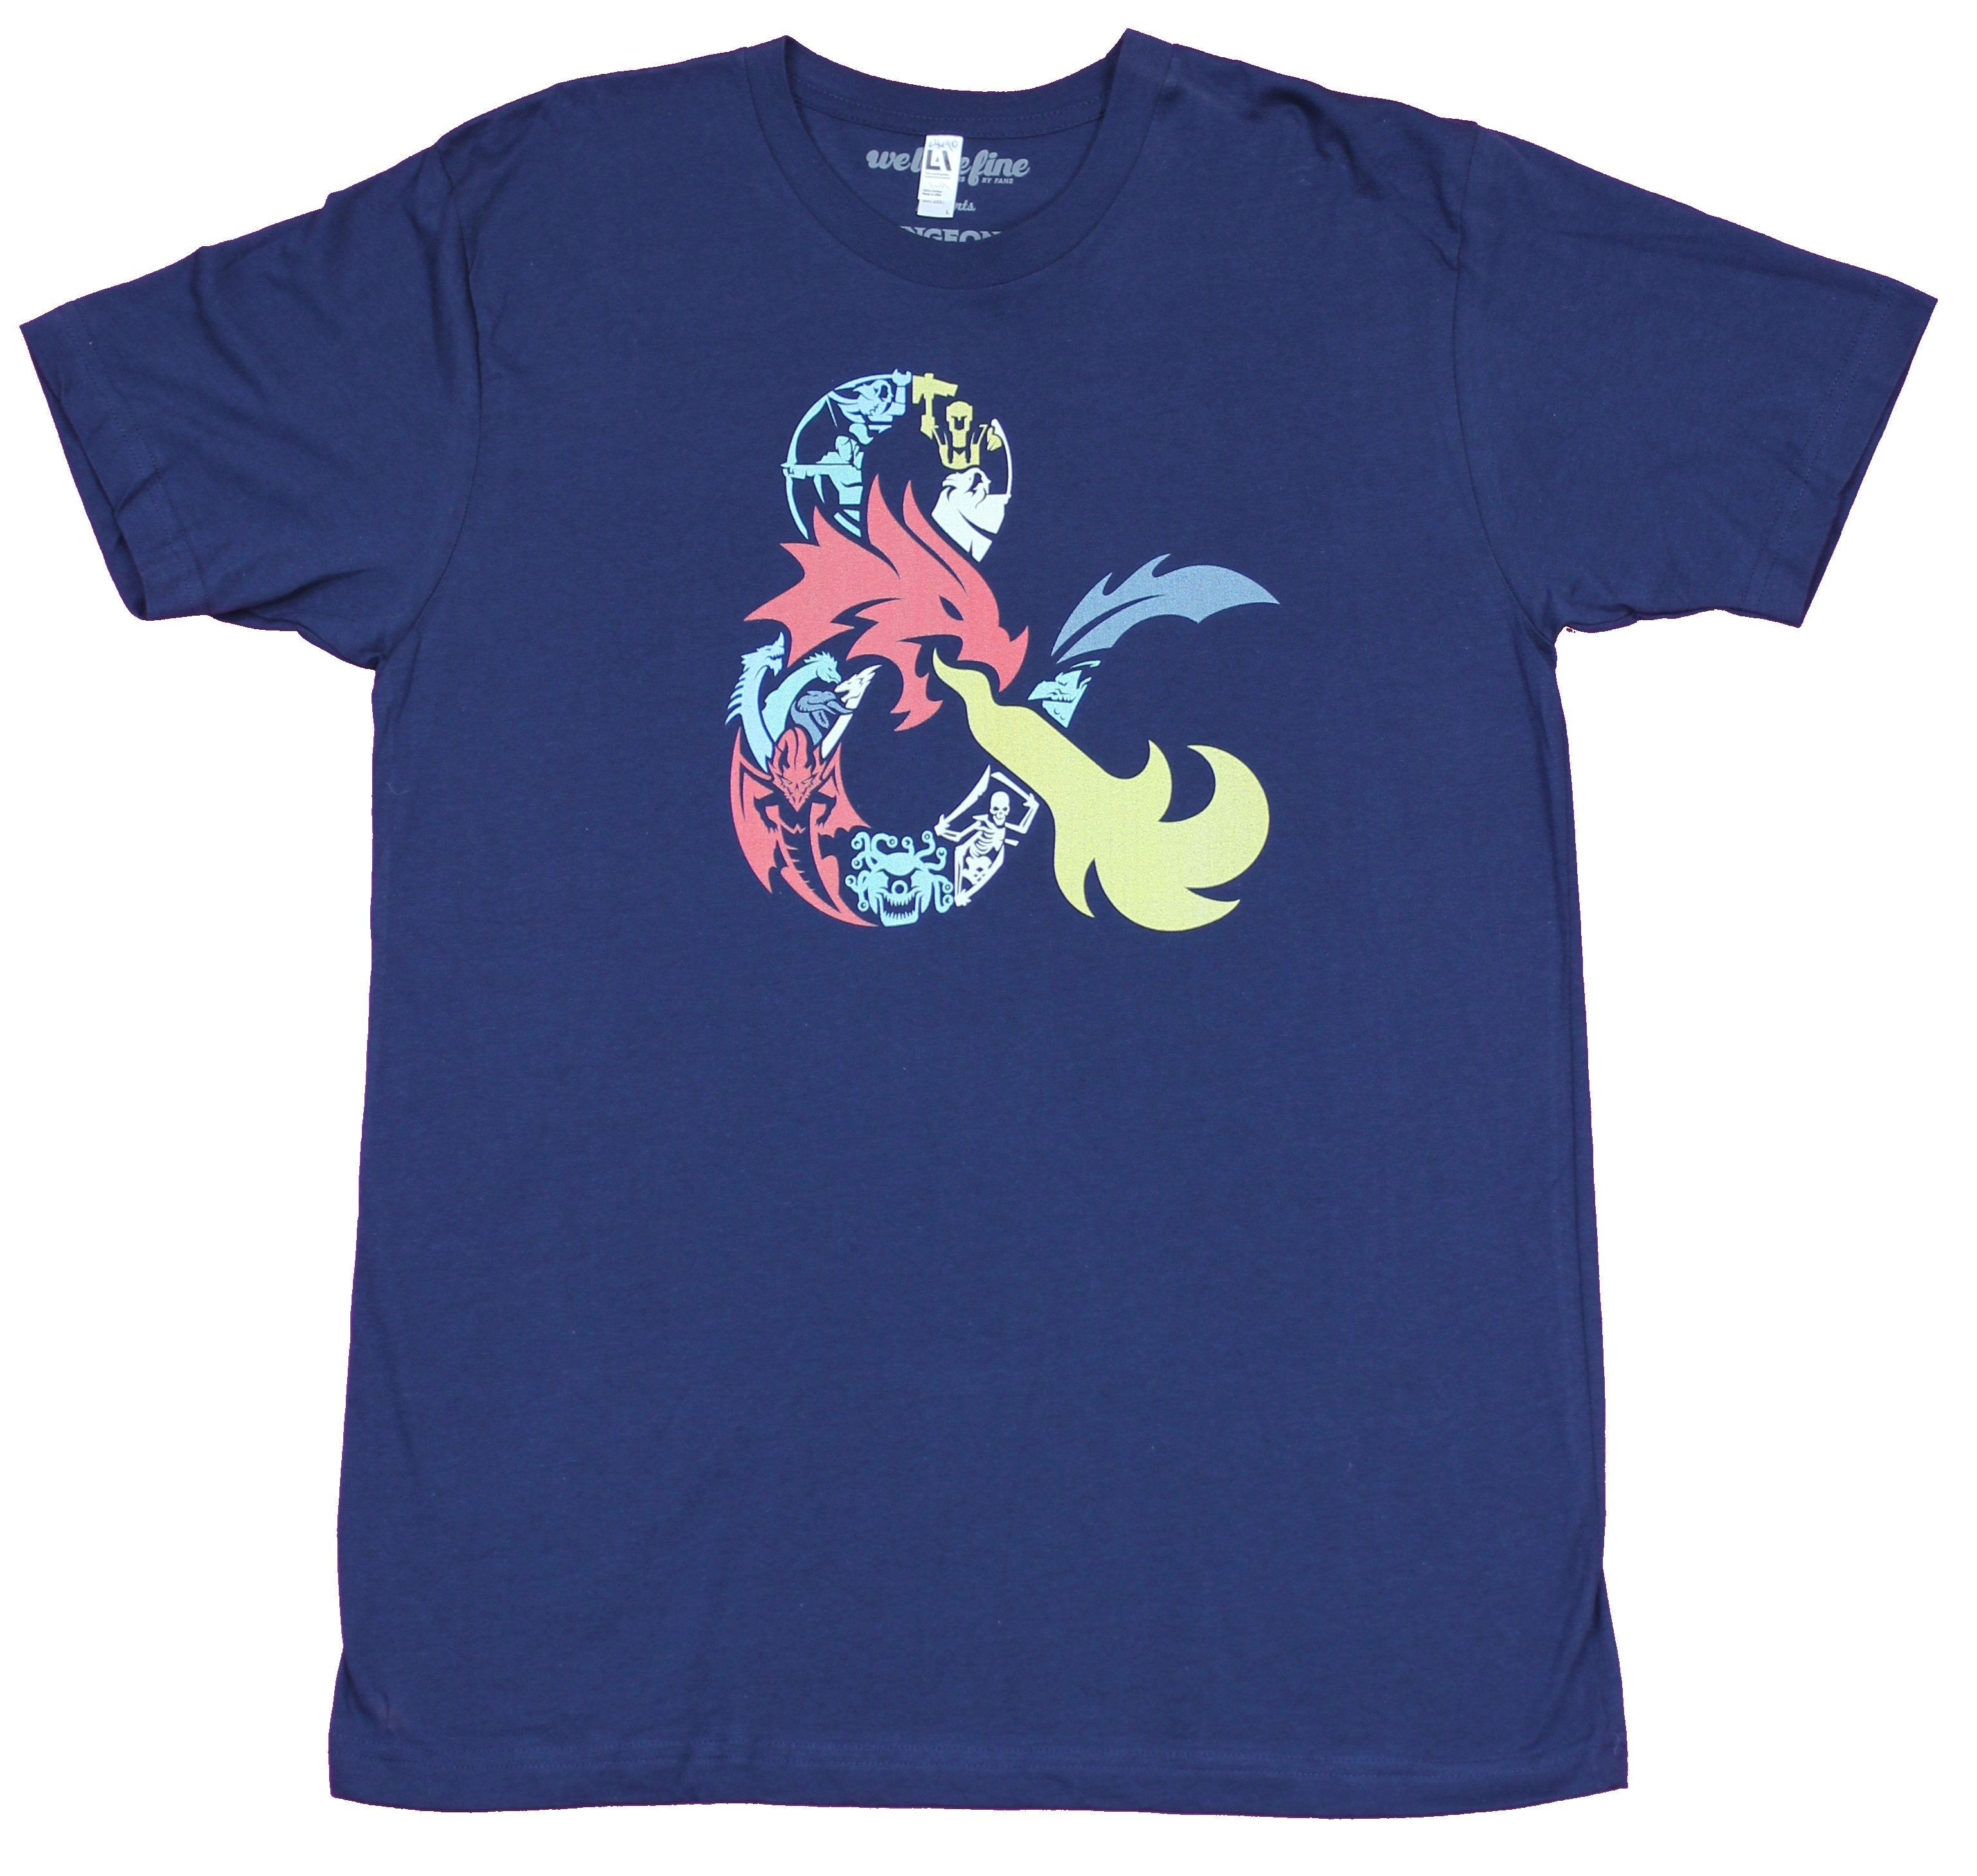 Dungeons & Dragons Mens T-Shirt - Ampersand Dragon Collage Image